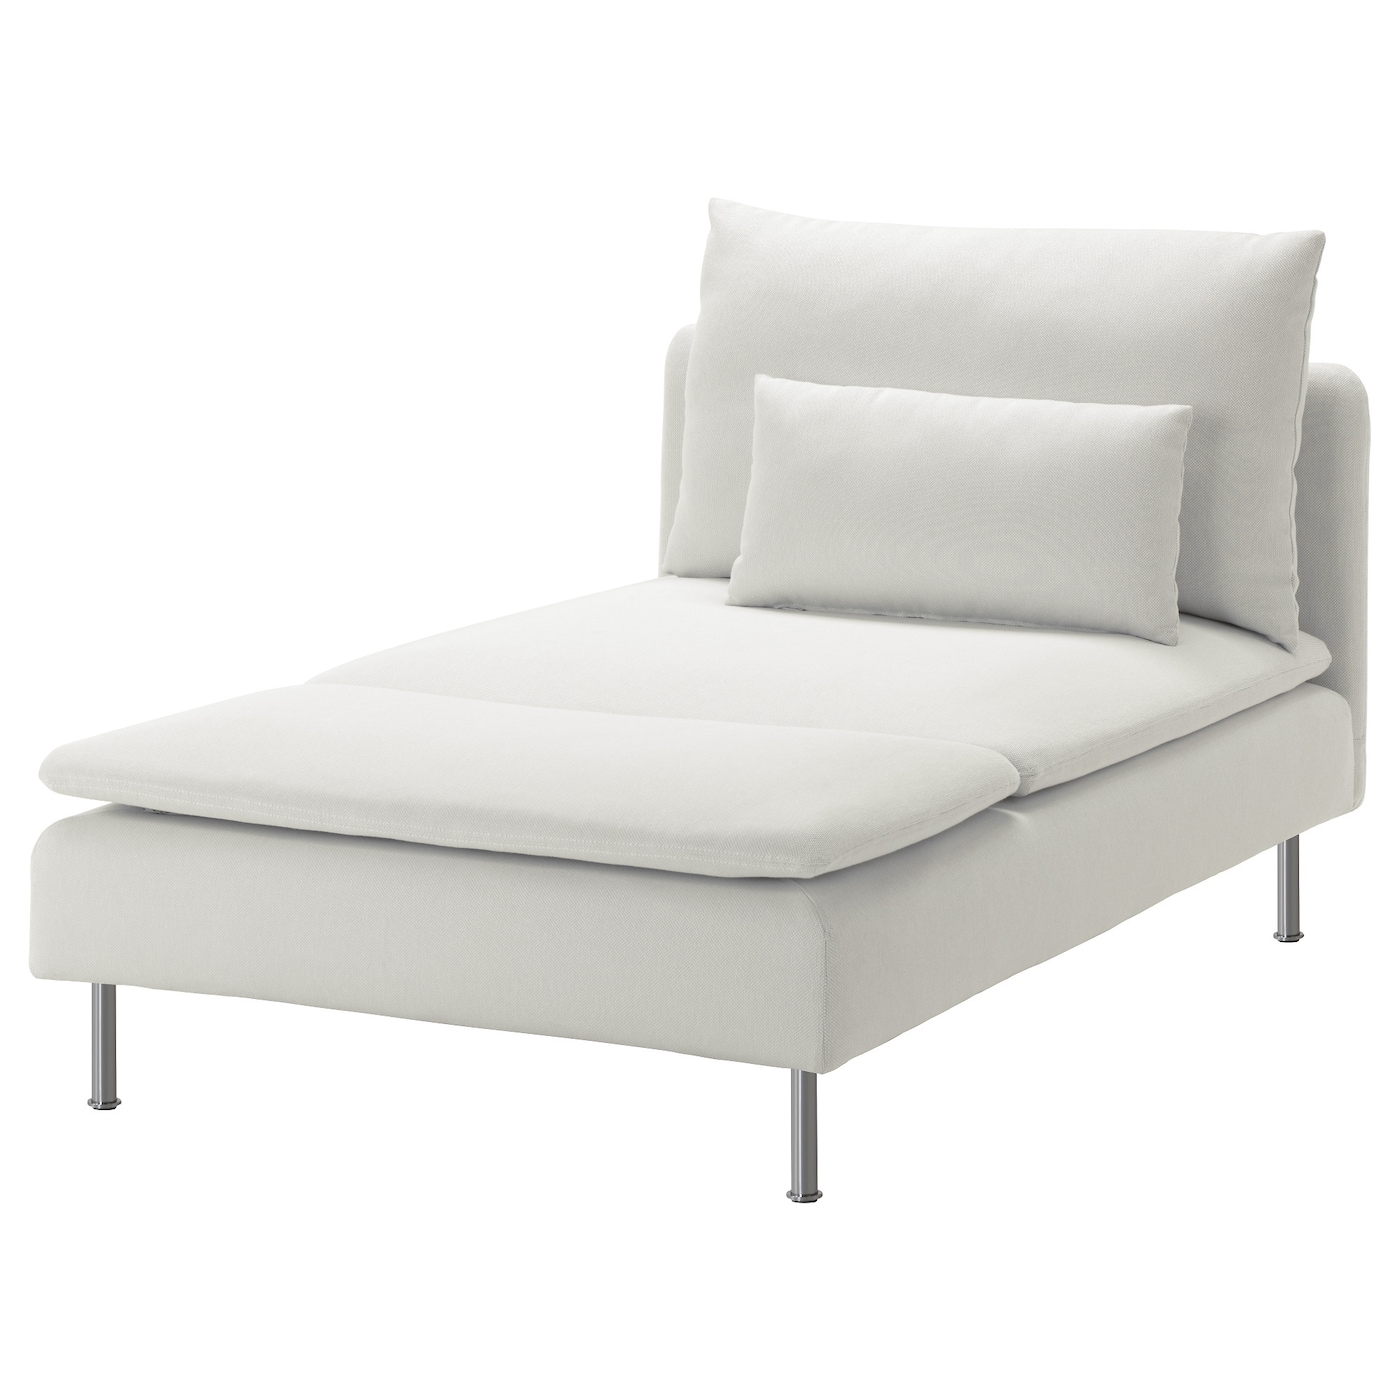 Ikea sderhamn chaise longue year guarantee read about the - Chaise longue jardin ikea ...